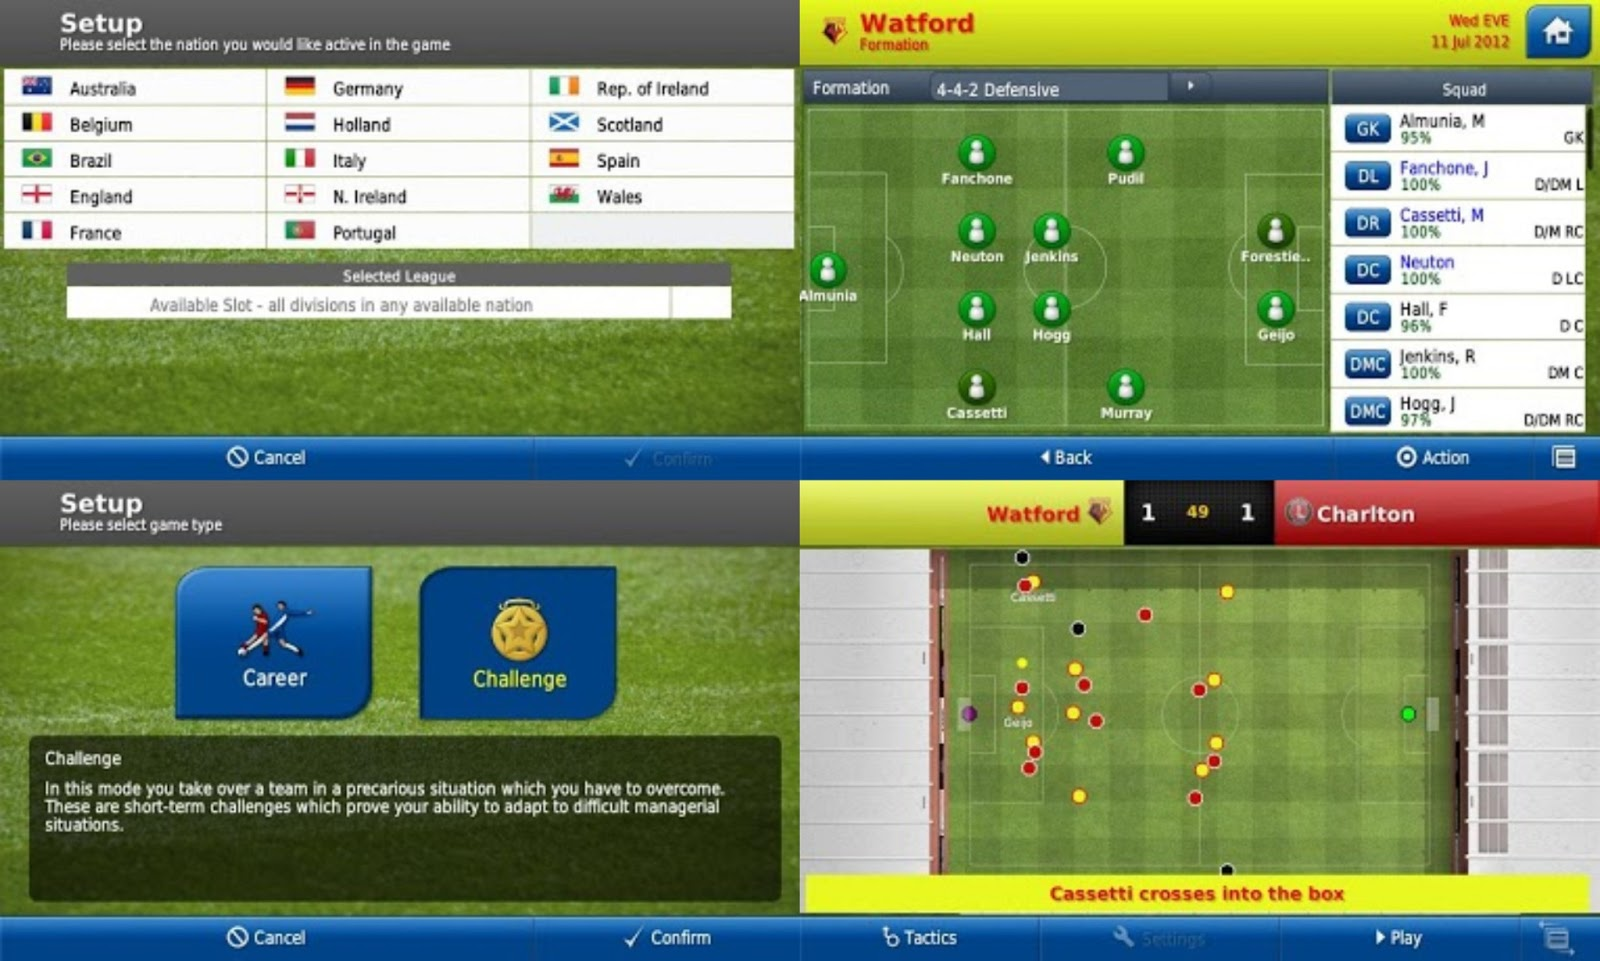 fmh 2013 v4 2 android 1 copy data fmh2013 data to sdcard 2 install